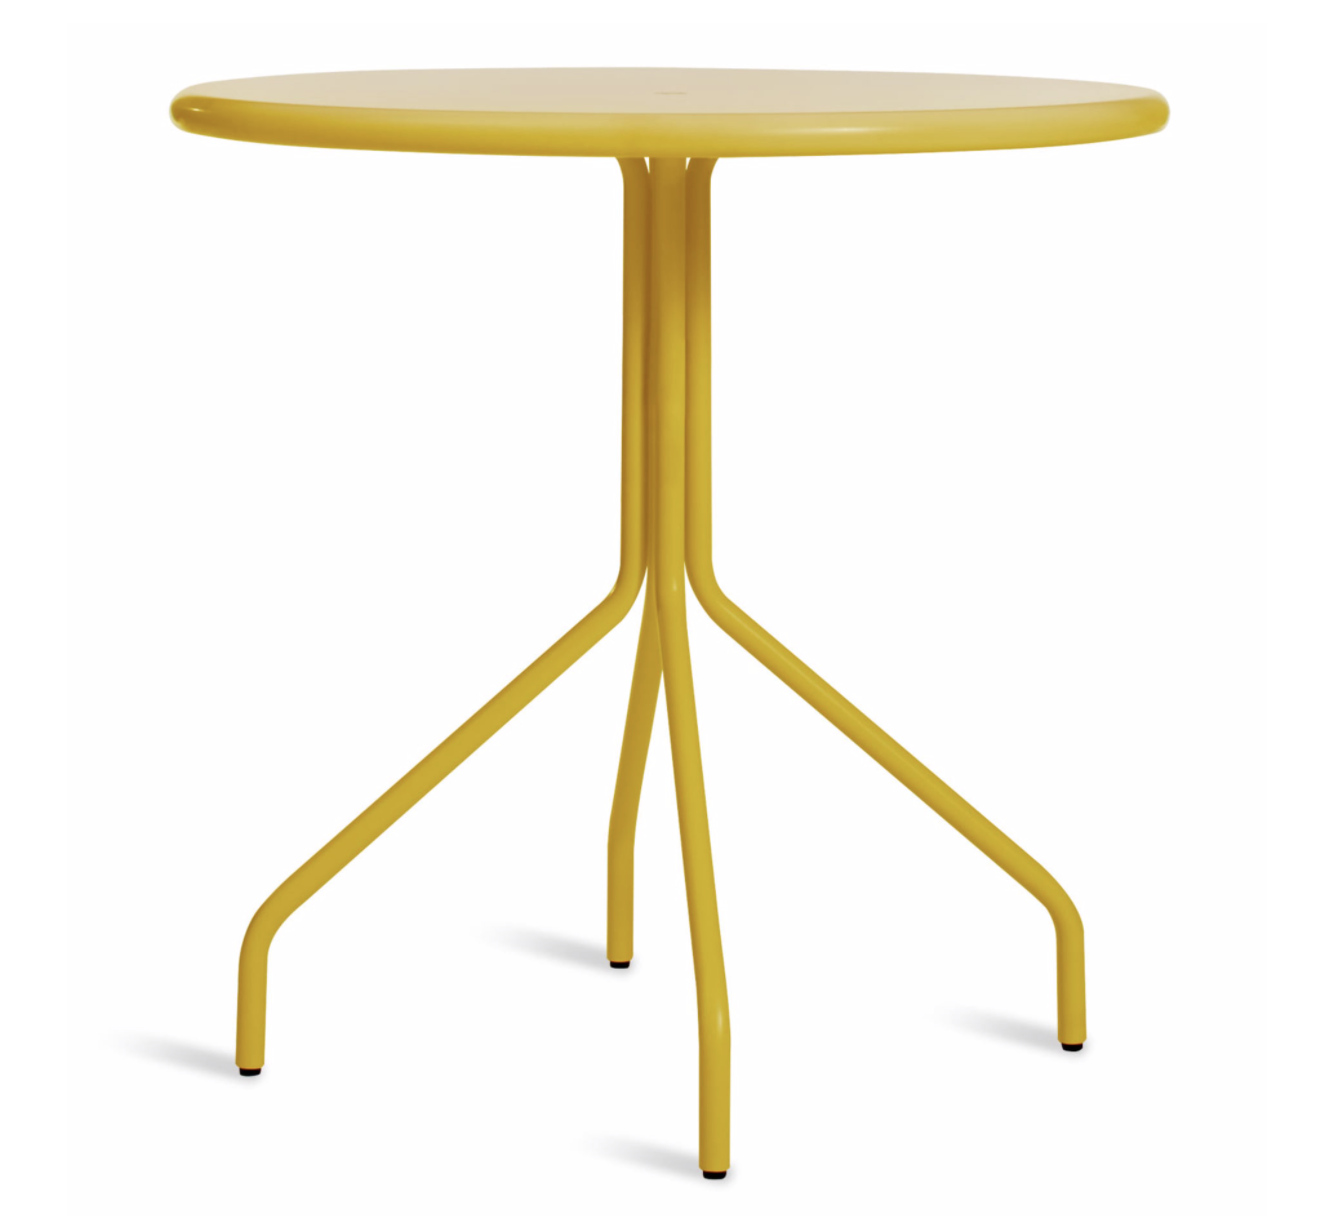 We Mixed and Matched 16 Outdoor Tables and Chairs So You Don't Have To